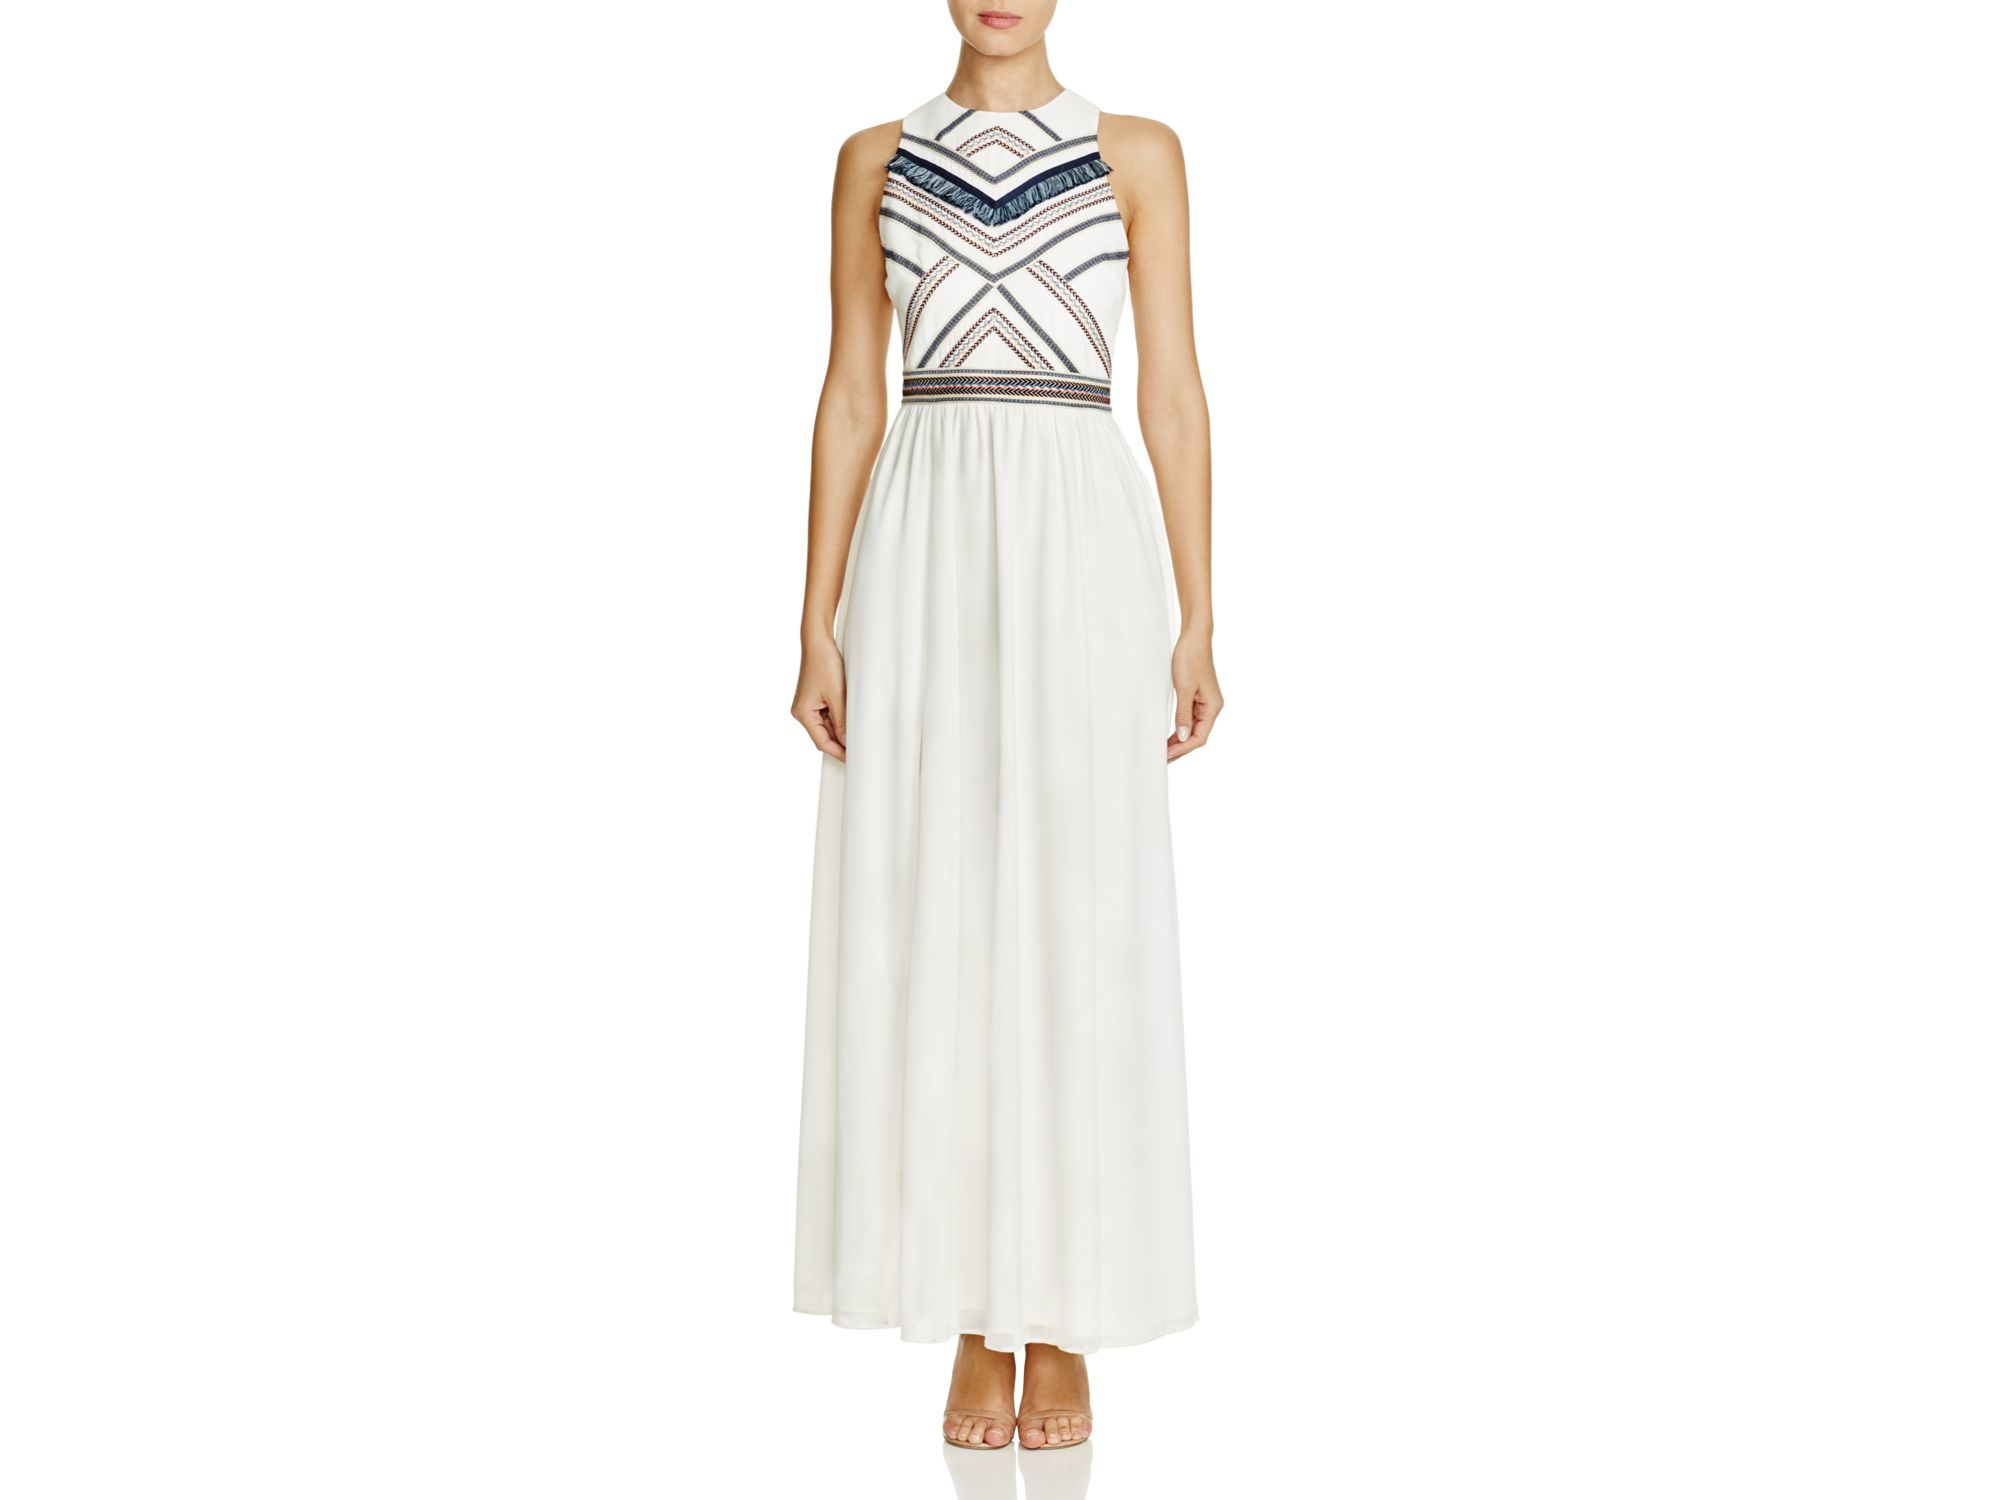 56875e0cc1884 Lyst - Adelyn Rae Fringed Embroidered Maxi Dress in White